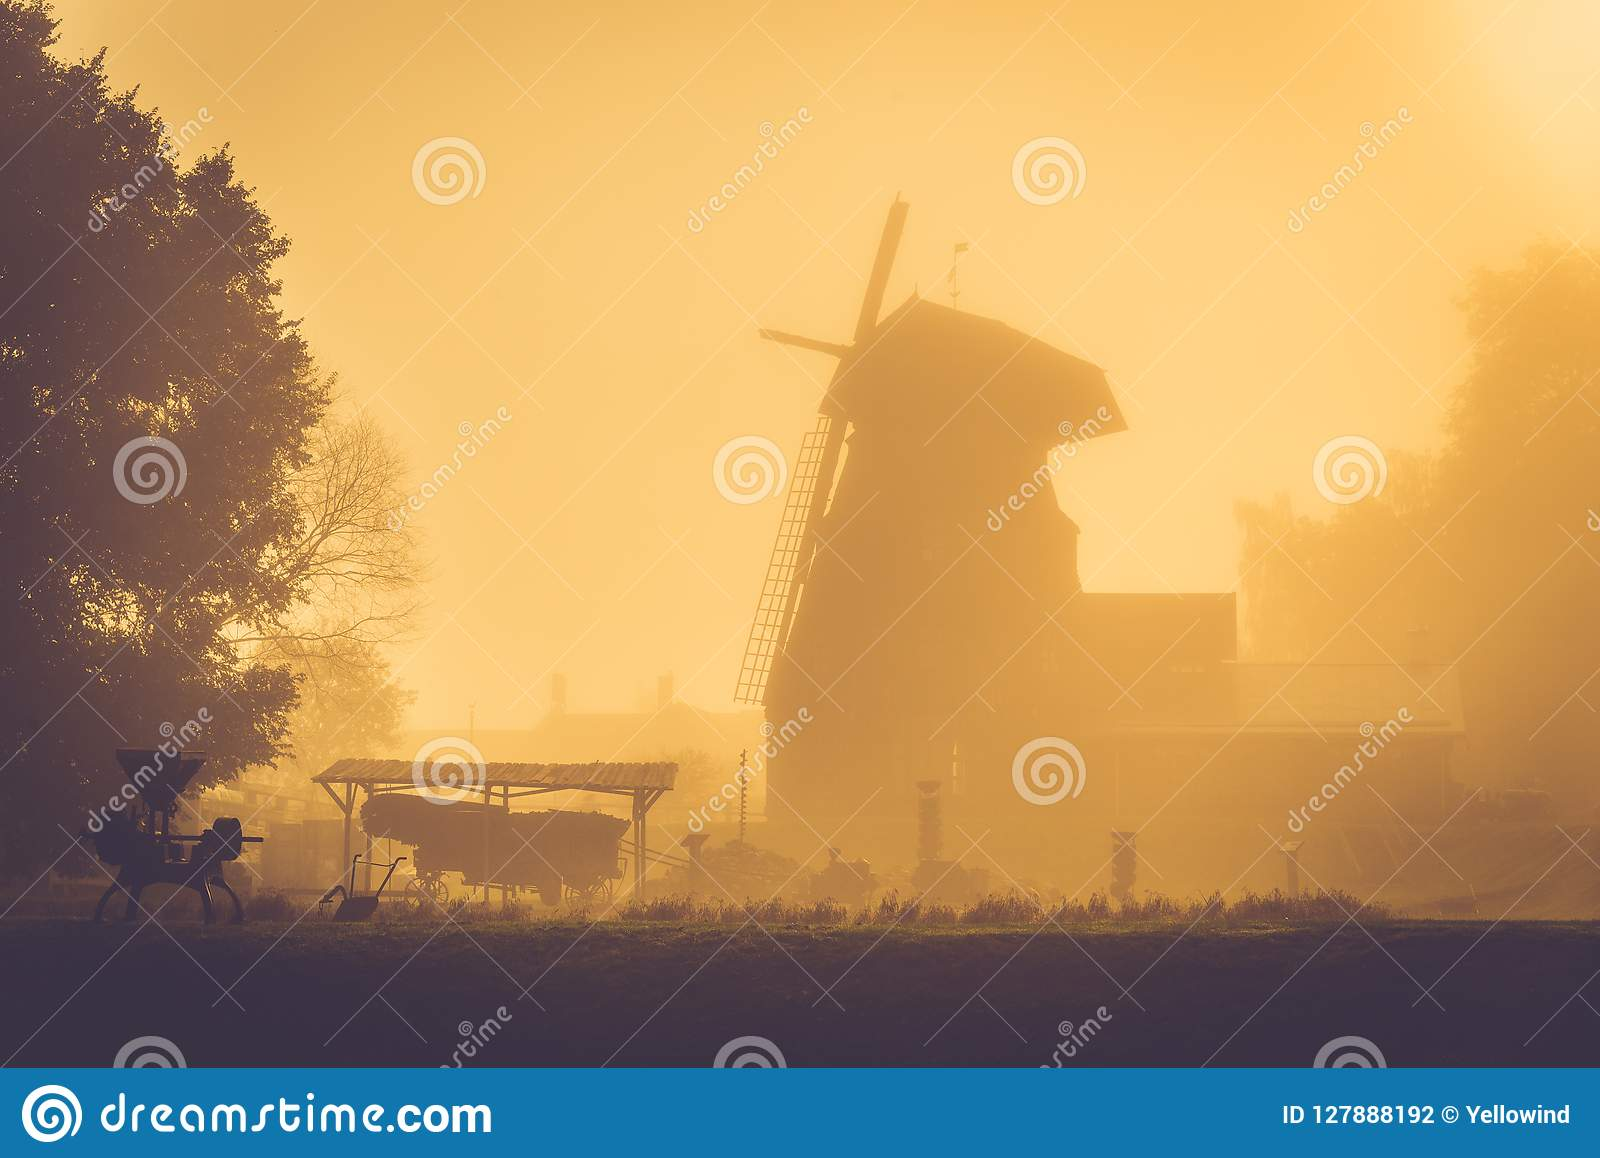 Old windmill at golden sunrise light, misty morning after rain